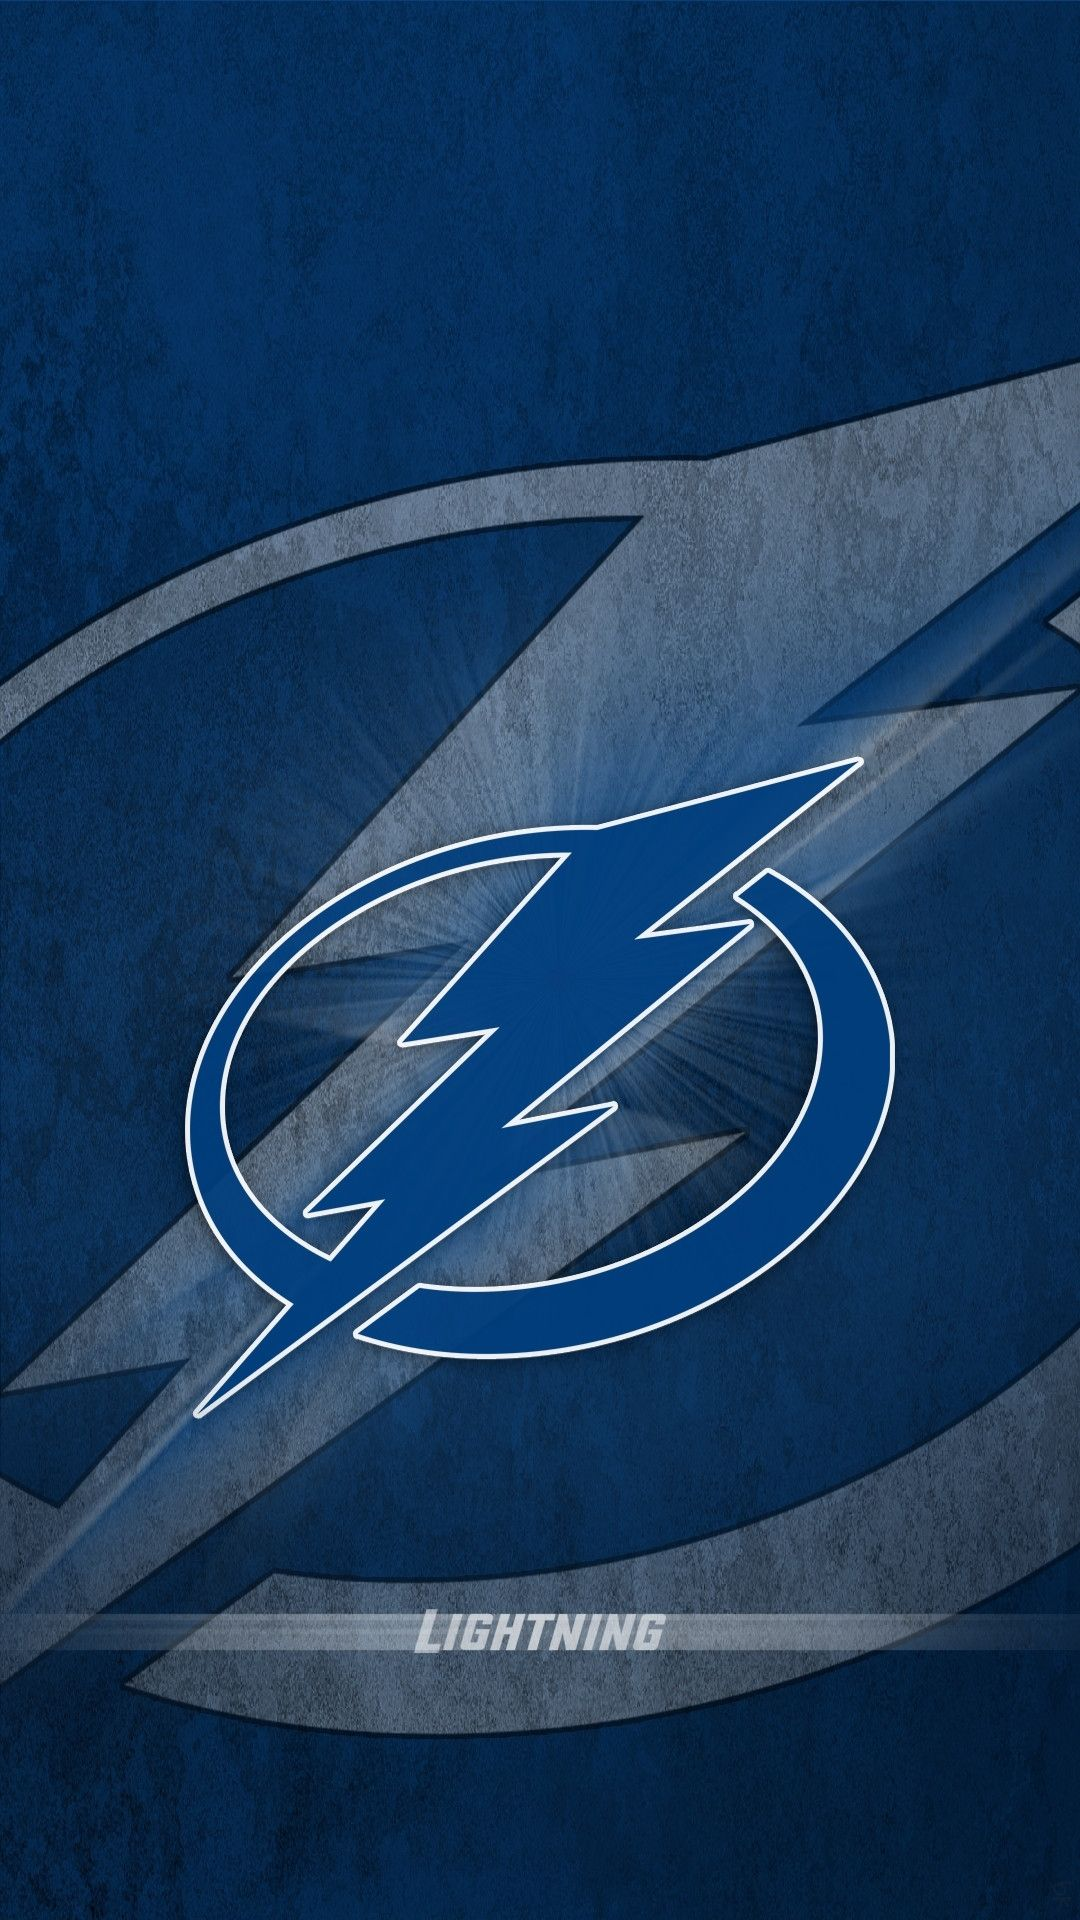 10 Most Popular Tampa Bay Lightning Iphone Wallpaper Full Hd 1920 1080 For Pc Background Tampa Bay Lightning Iphone Wallpapers Full Hd Lightning